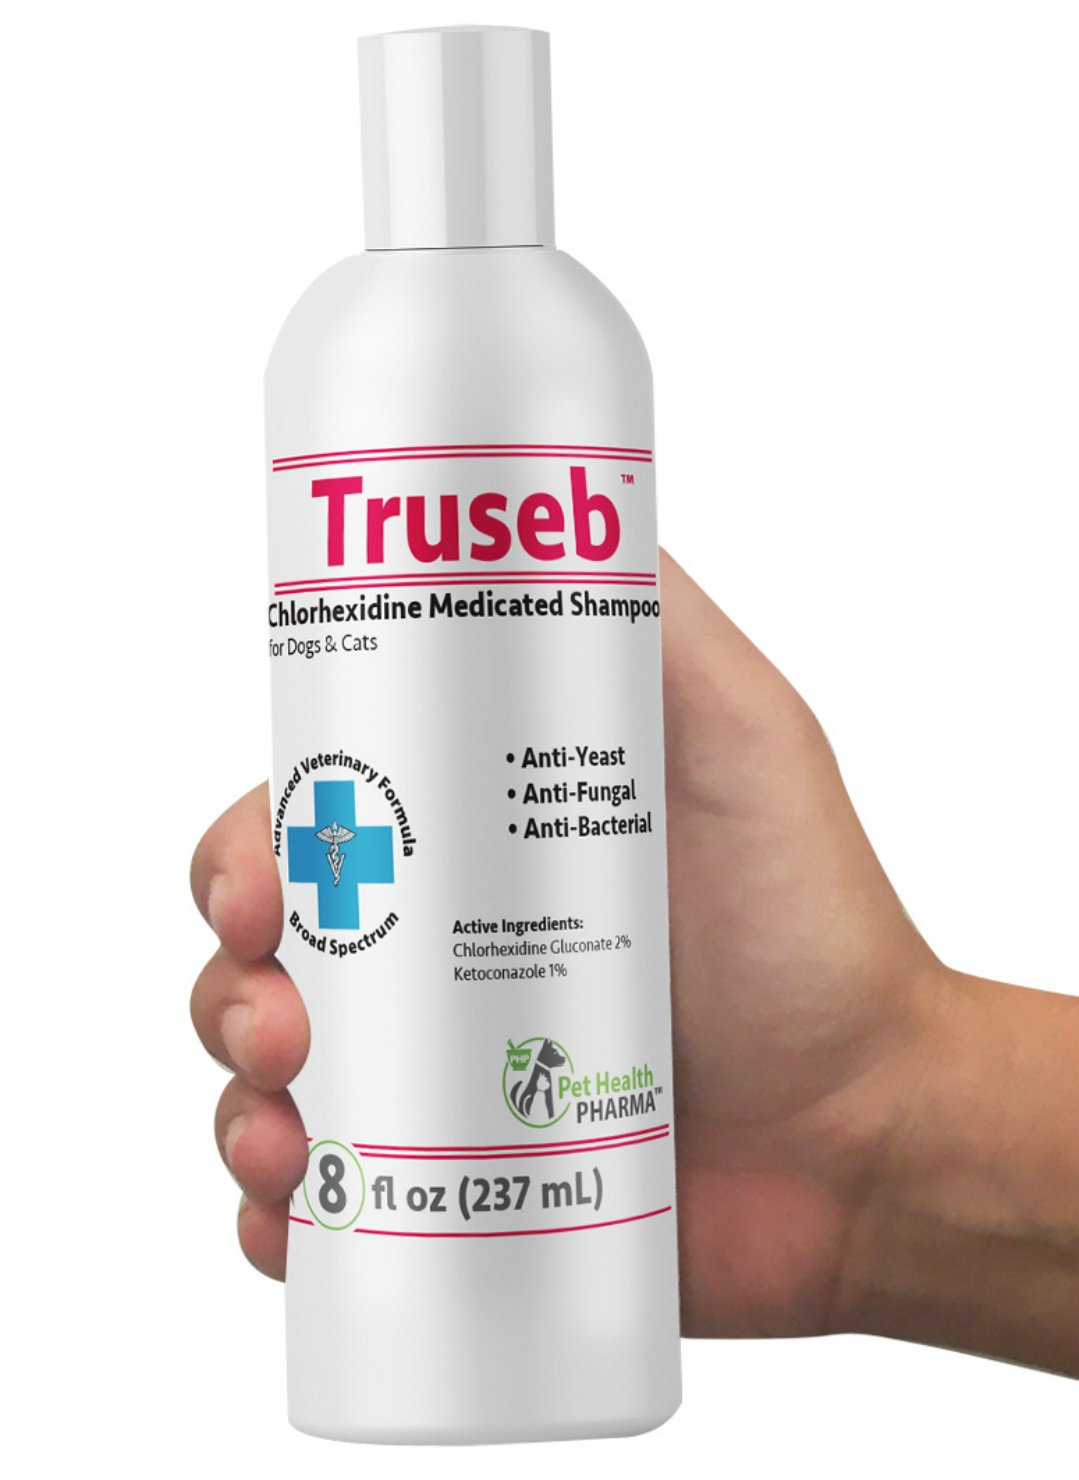 Truseb | #1 Ketoconazole & Chlorhexidine Shampoo for Dogs & Cats Antifungal, Antibacterial & Antiseptic Medicated Dog Shampoo for Hot Spots, Ringworm, Yeast, Fungal Infections, Acne & Pyoderma U.S.A